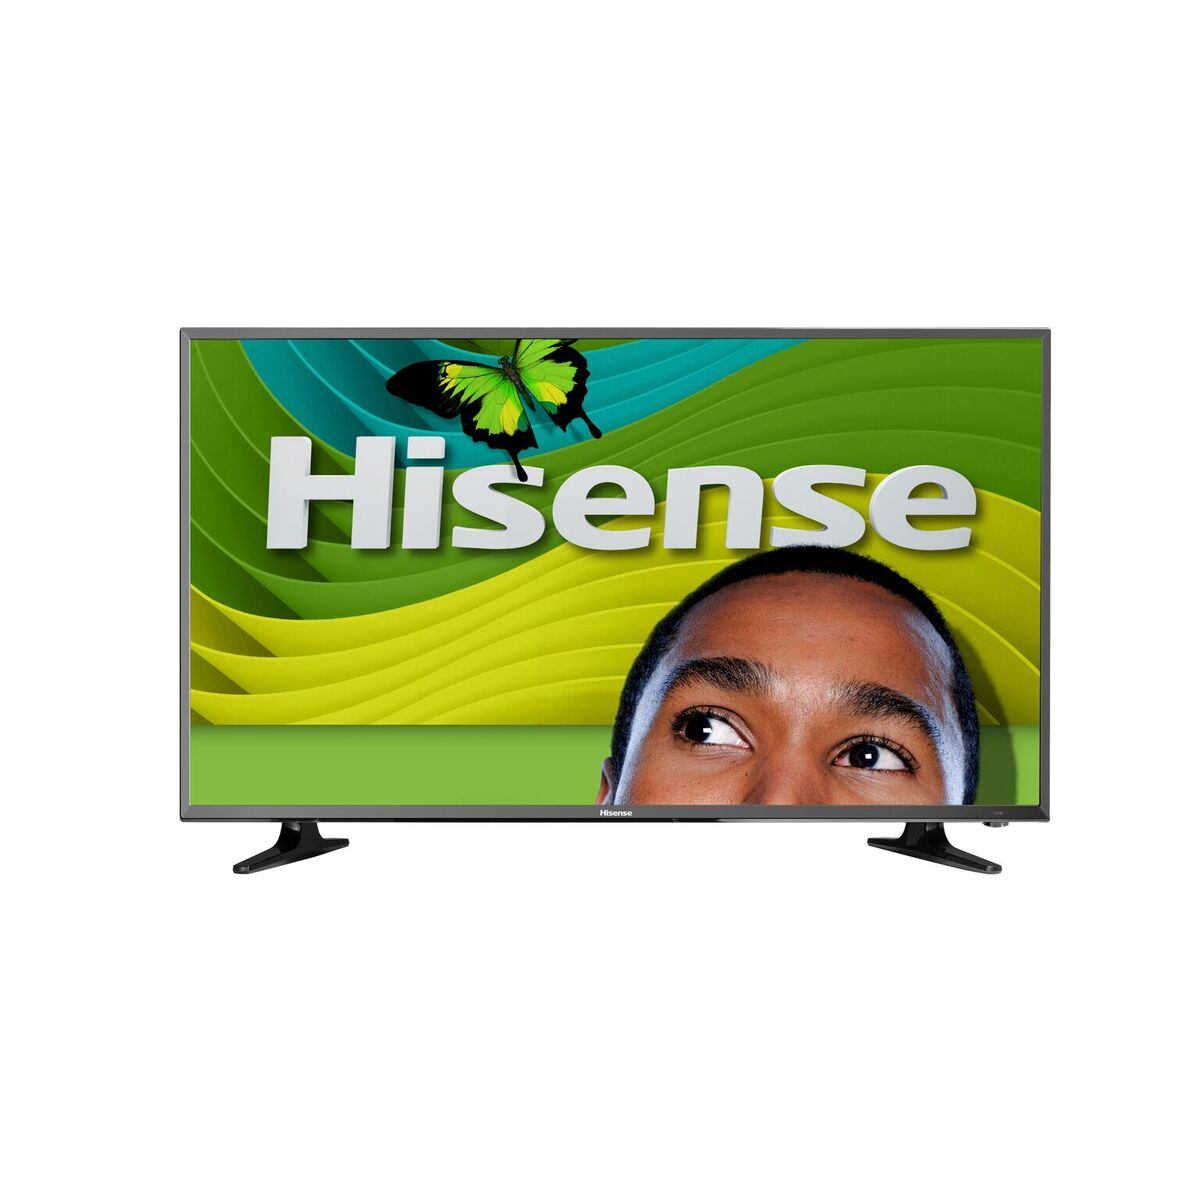 "Hisense 40H3B 40"" Class H3 Series - Full HD, LED TV - 108..."